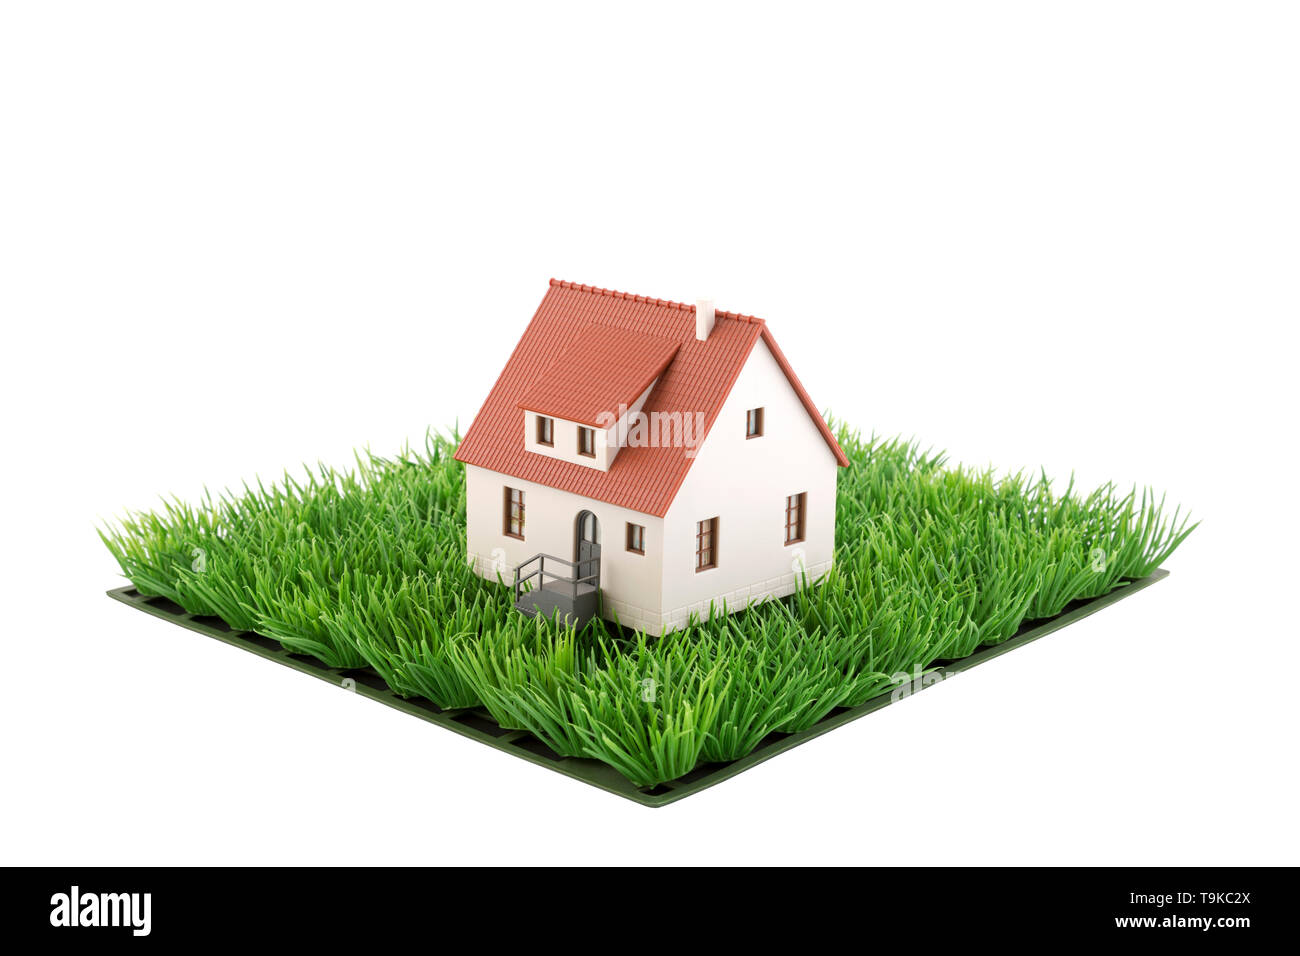 House miniature on square of green grass field isolated on white background - Stock Image